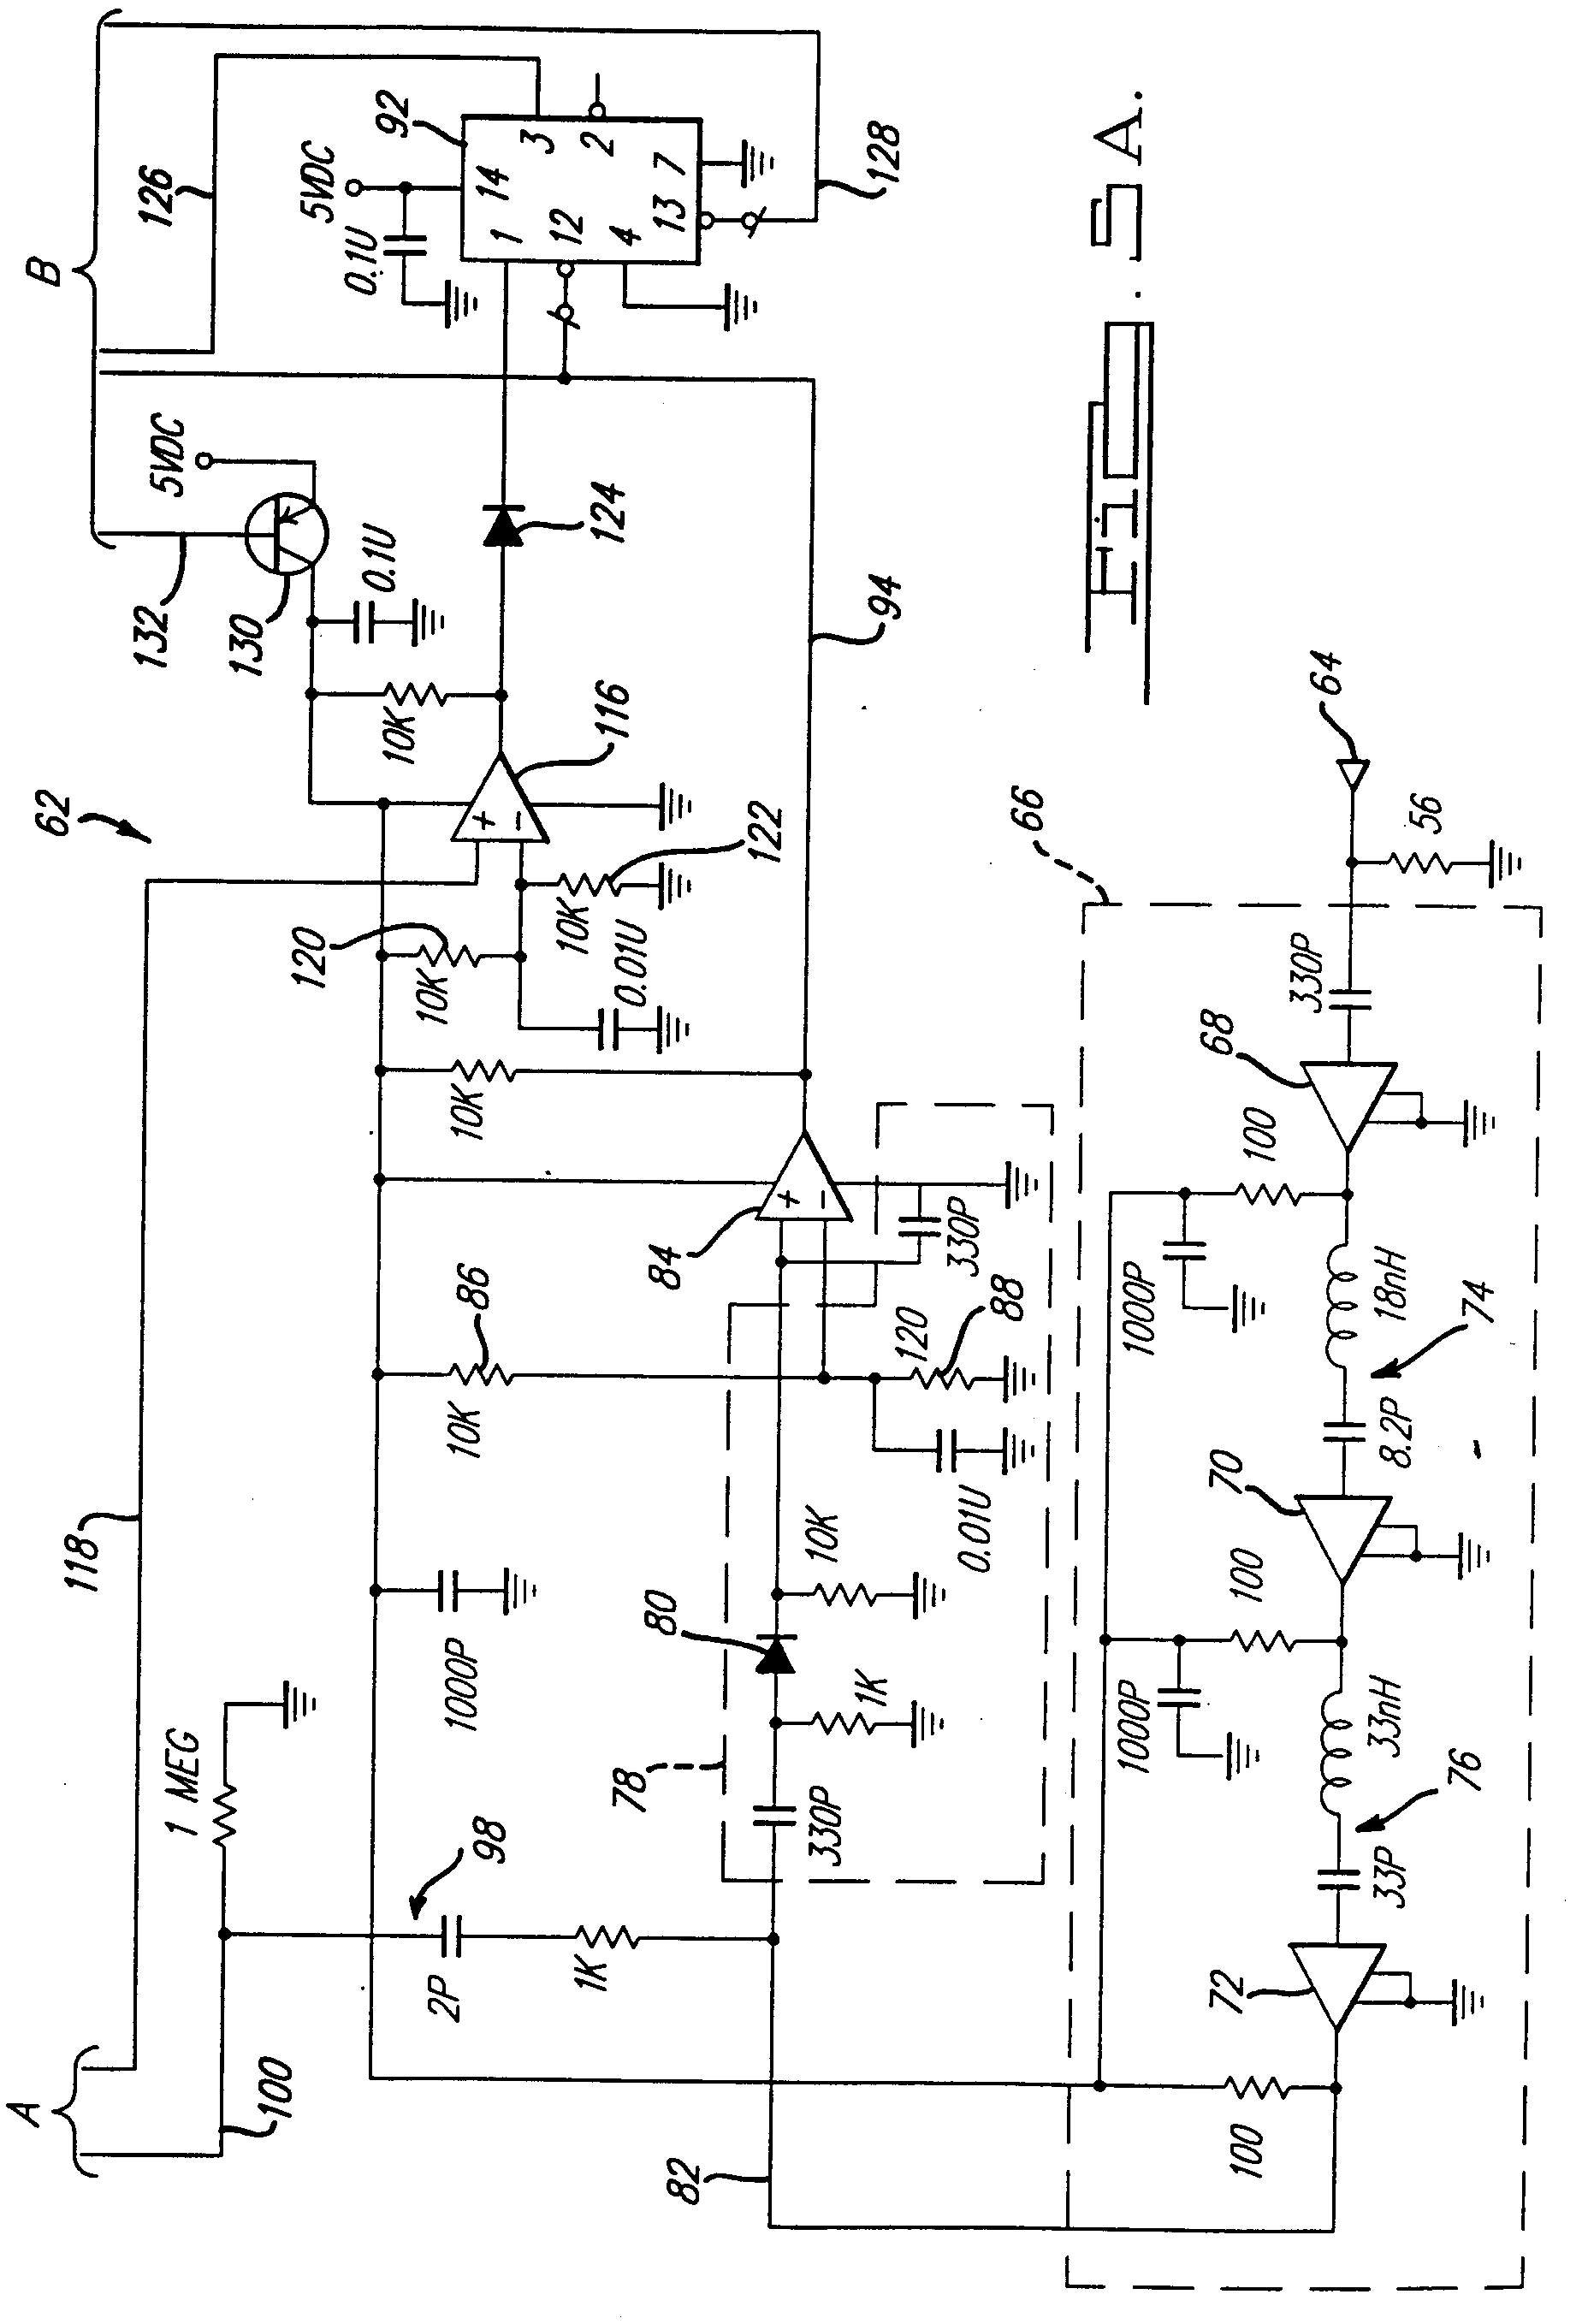 related with raynor wiring diagram